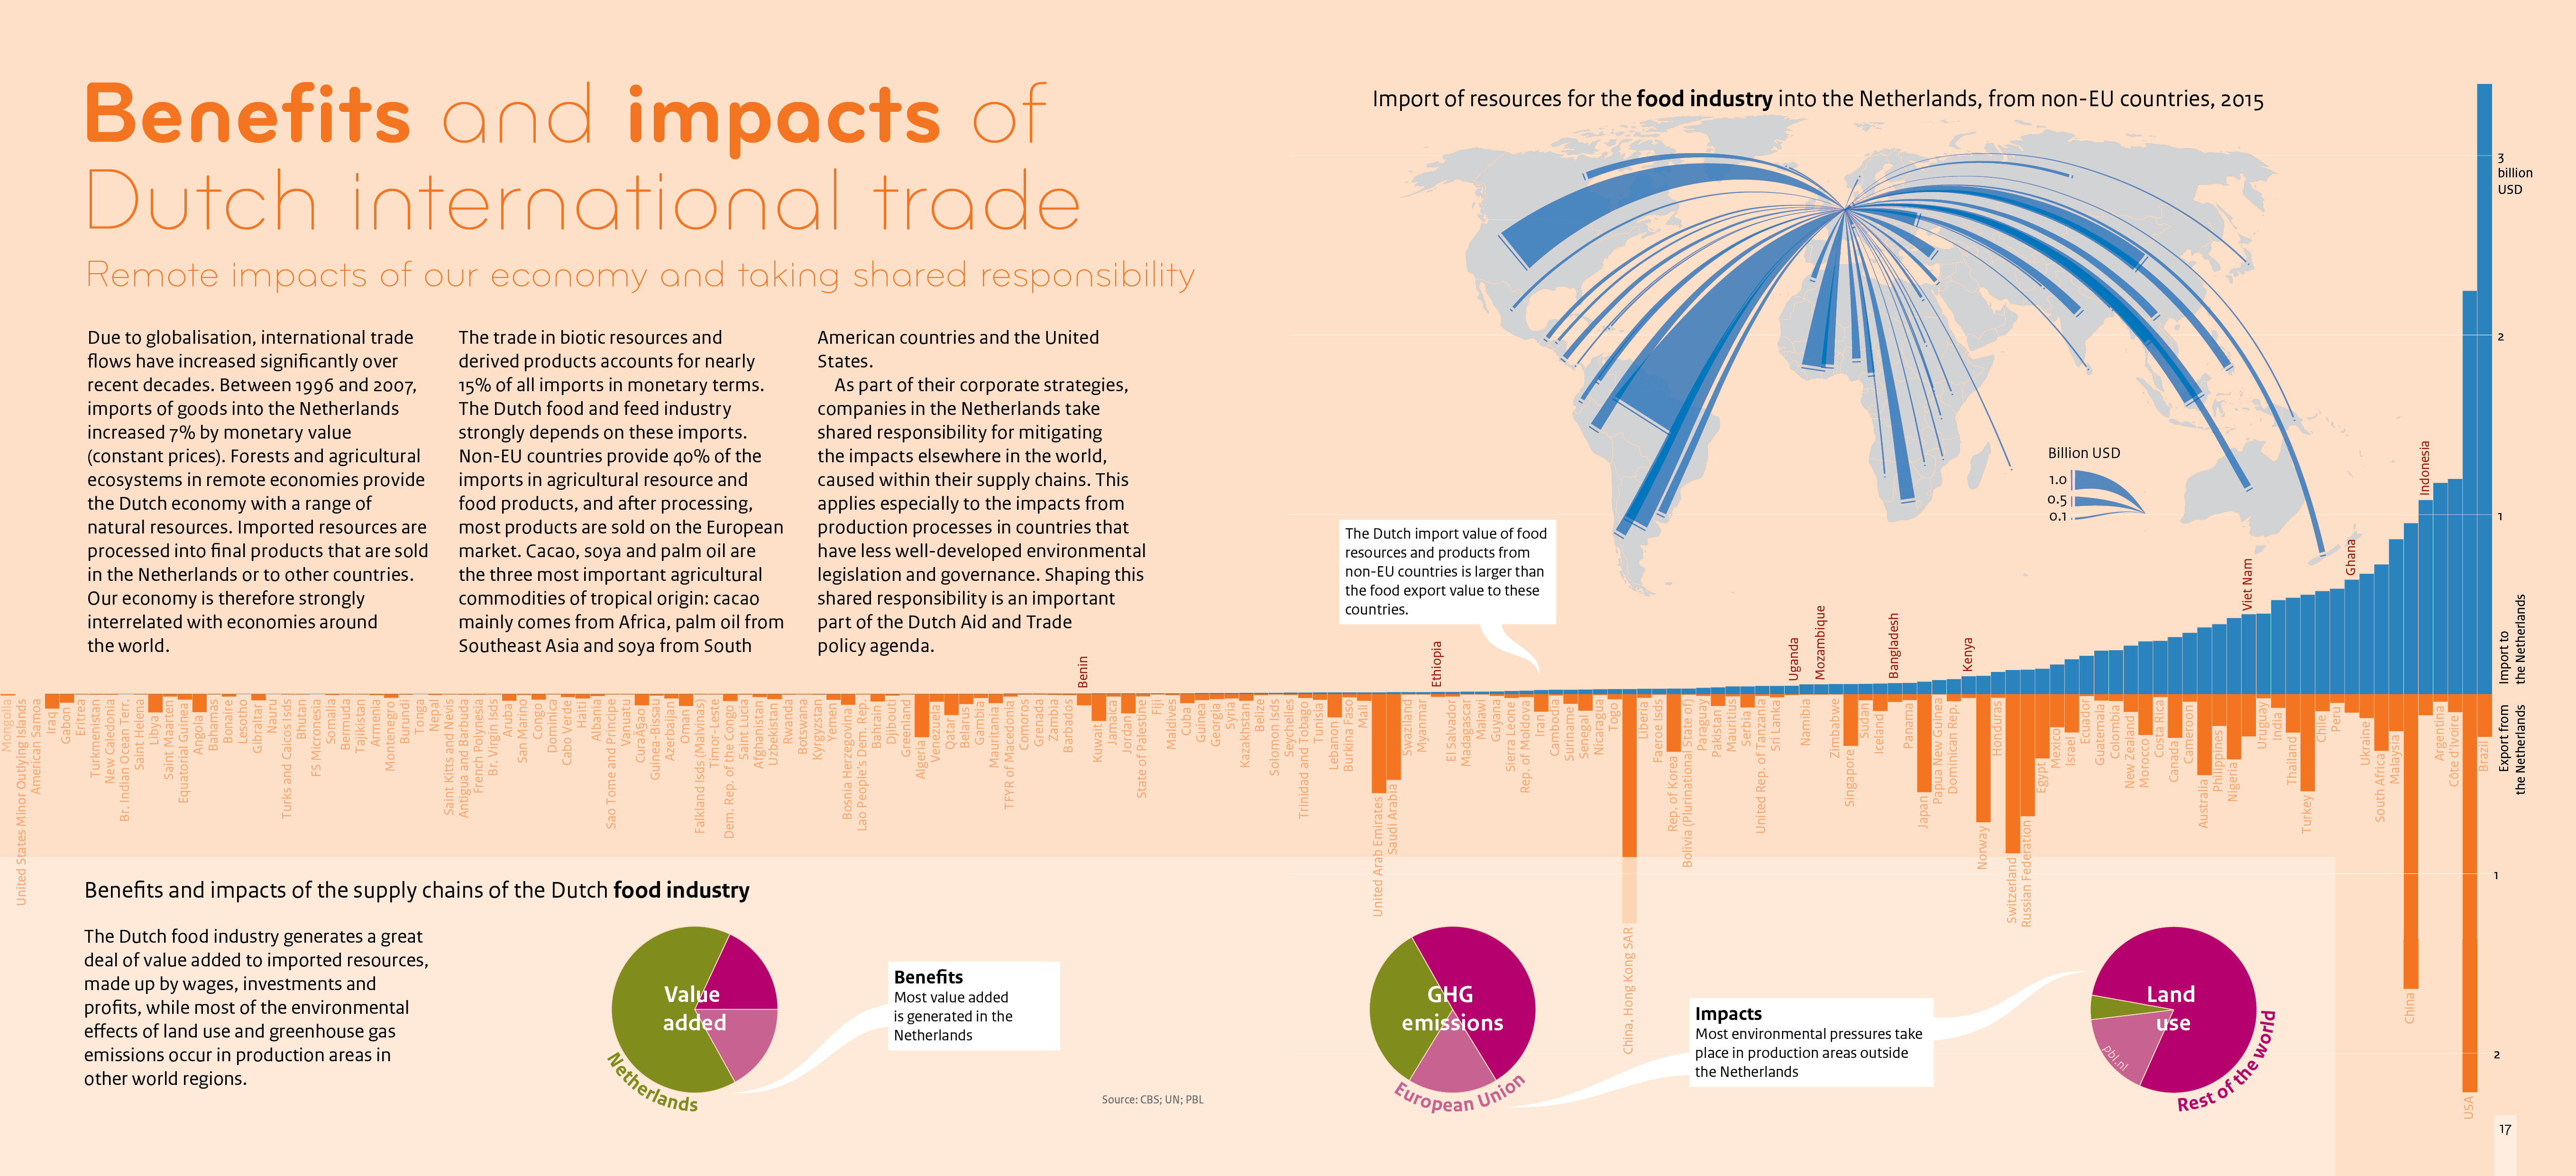 Bar chart showing the value of imports to and exports from the Netherlands from non-EU countries. Pie charts show that in the supply chain, most value added is generated in the Netherlands, while greenhouse gas emissions and land use impacts are elsewhere.